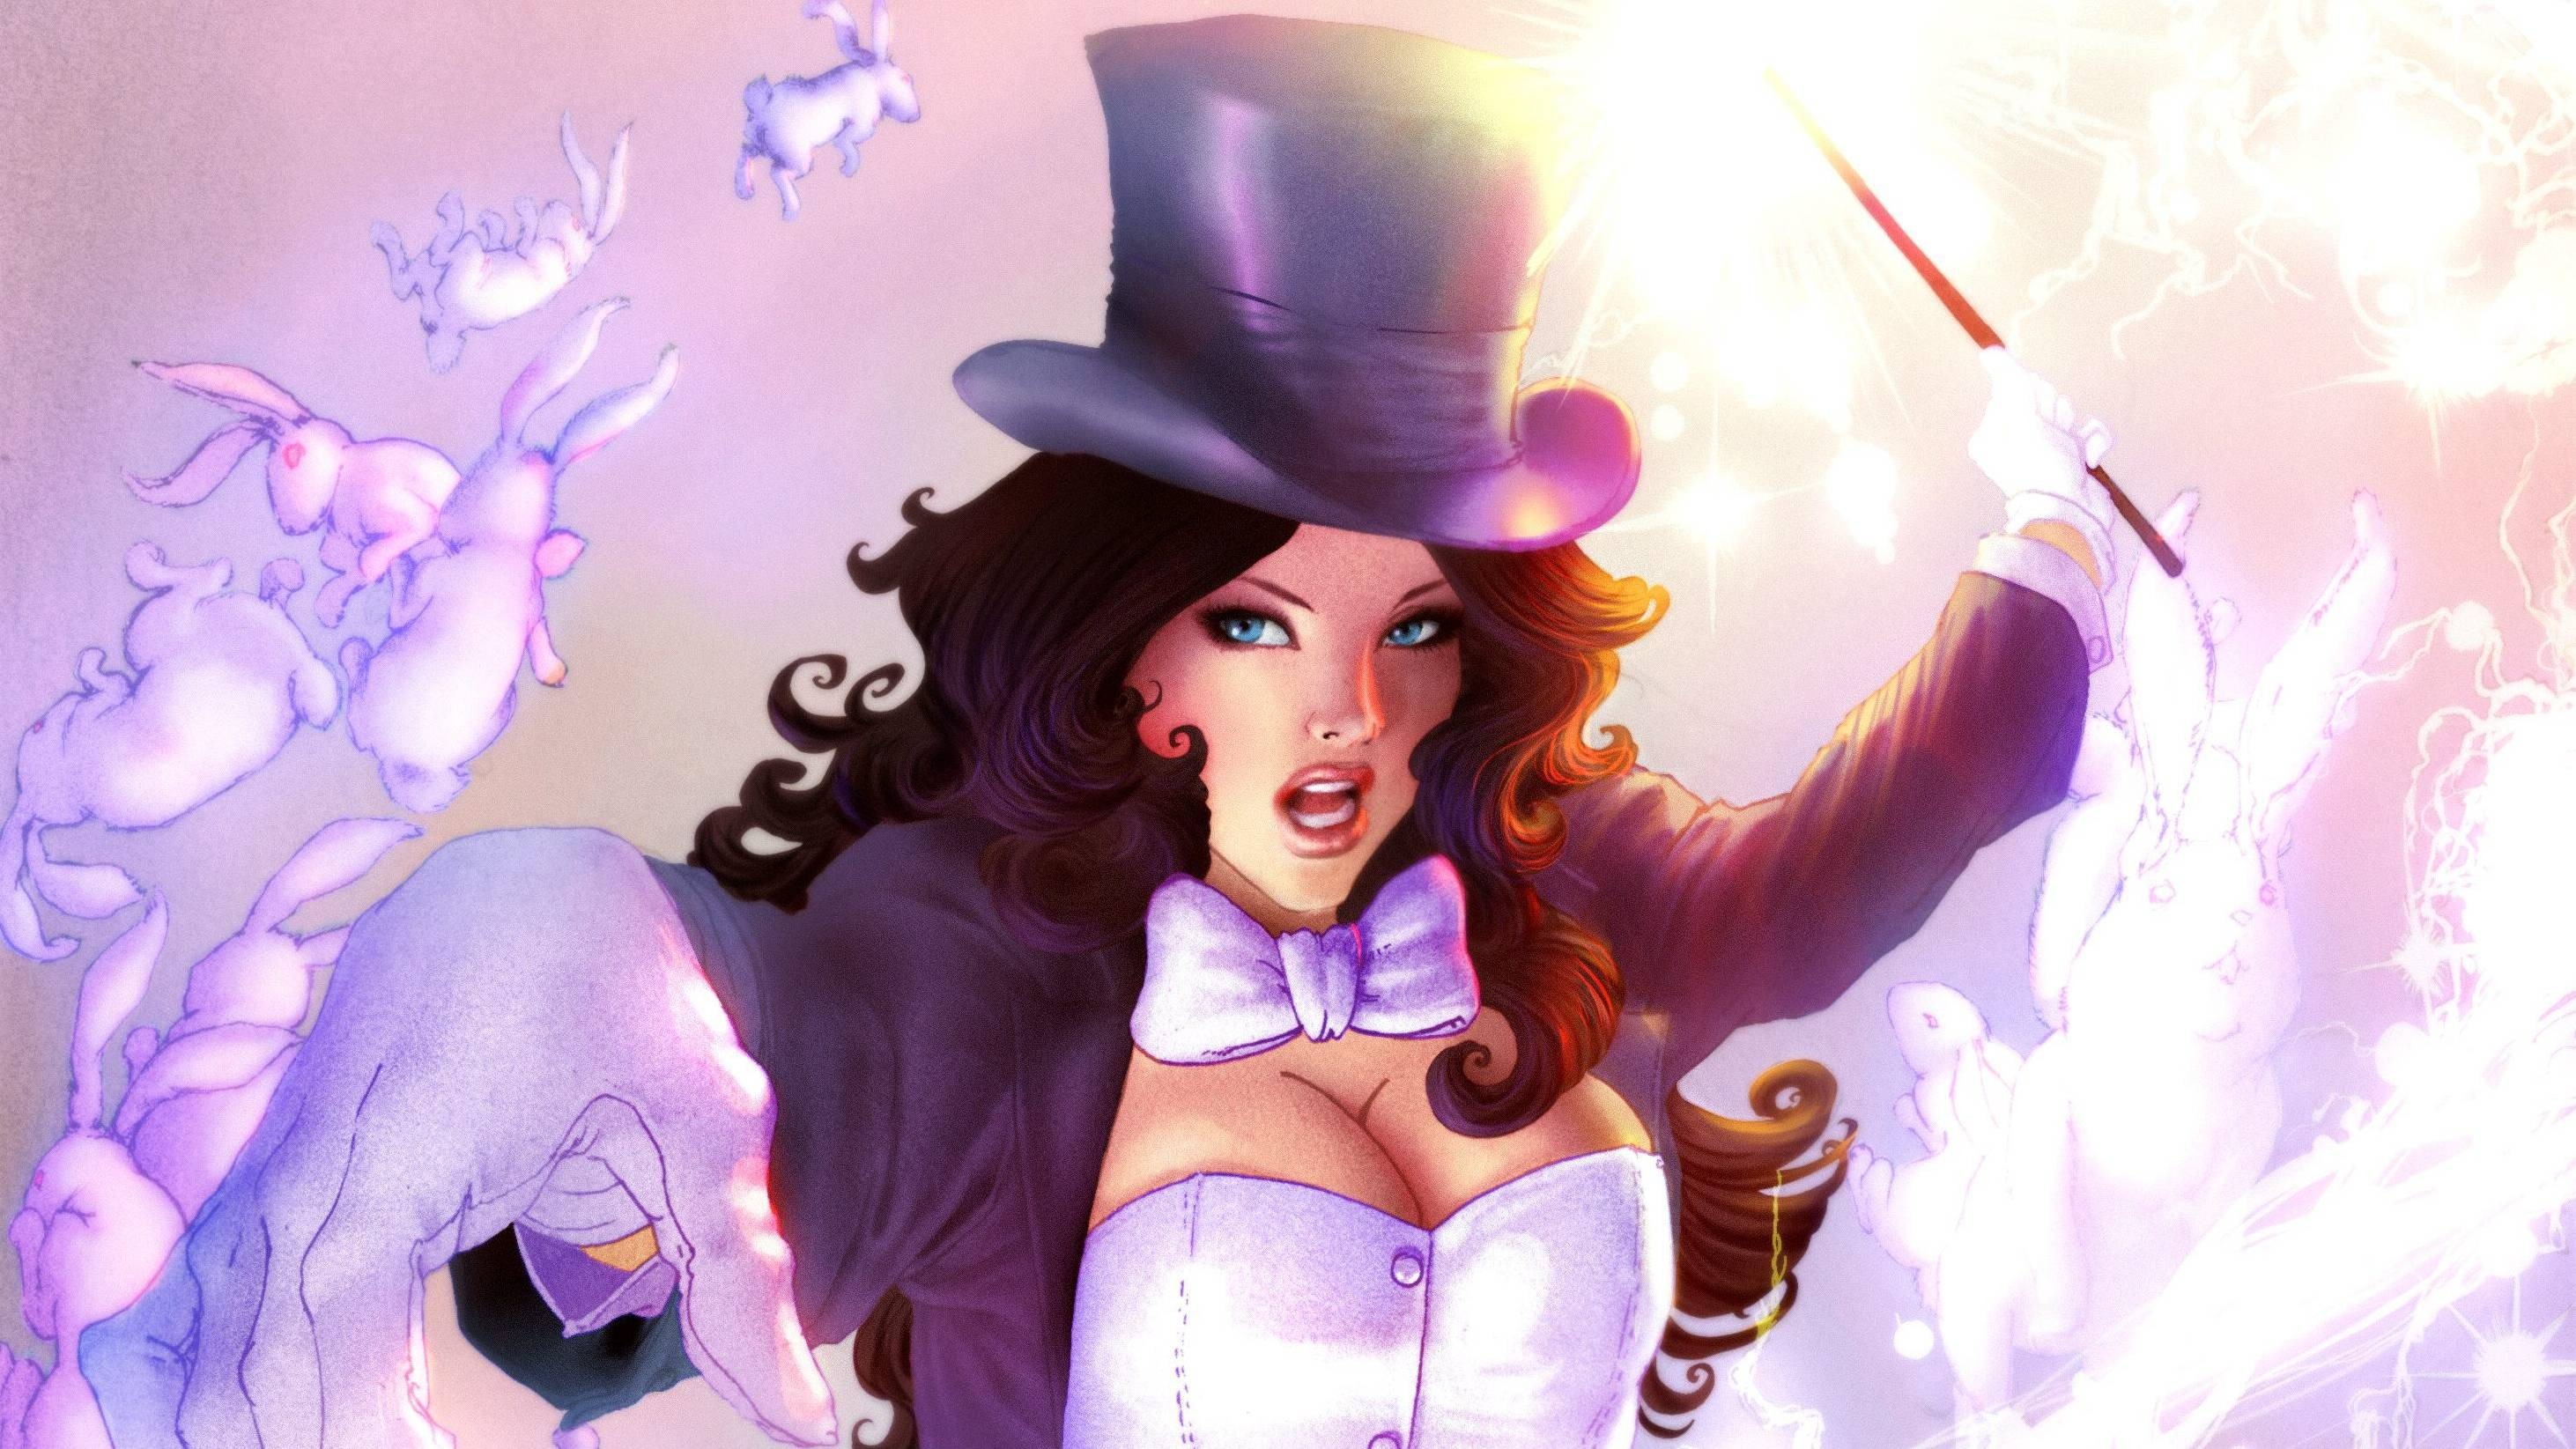 zatanna dc wallpaper - photo #2